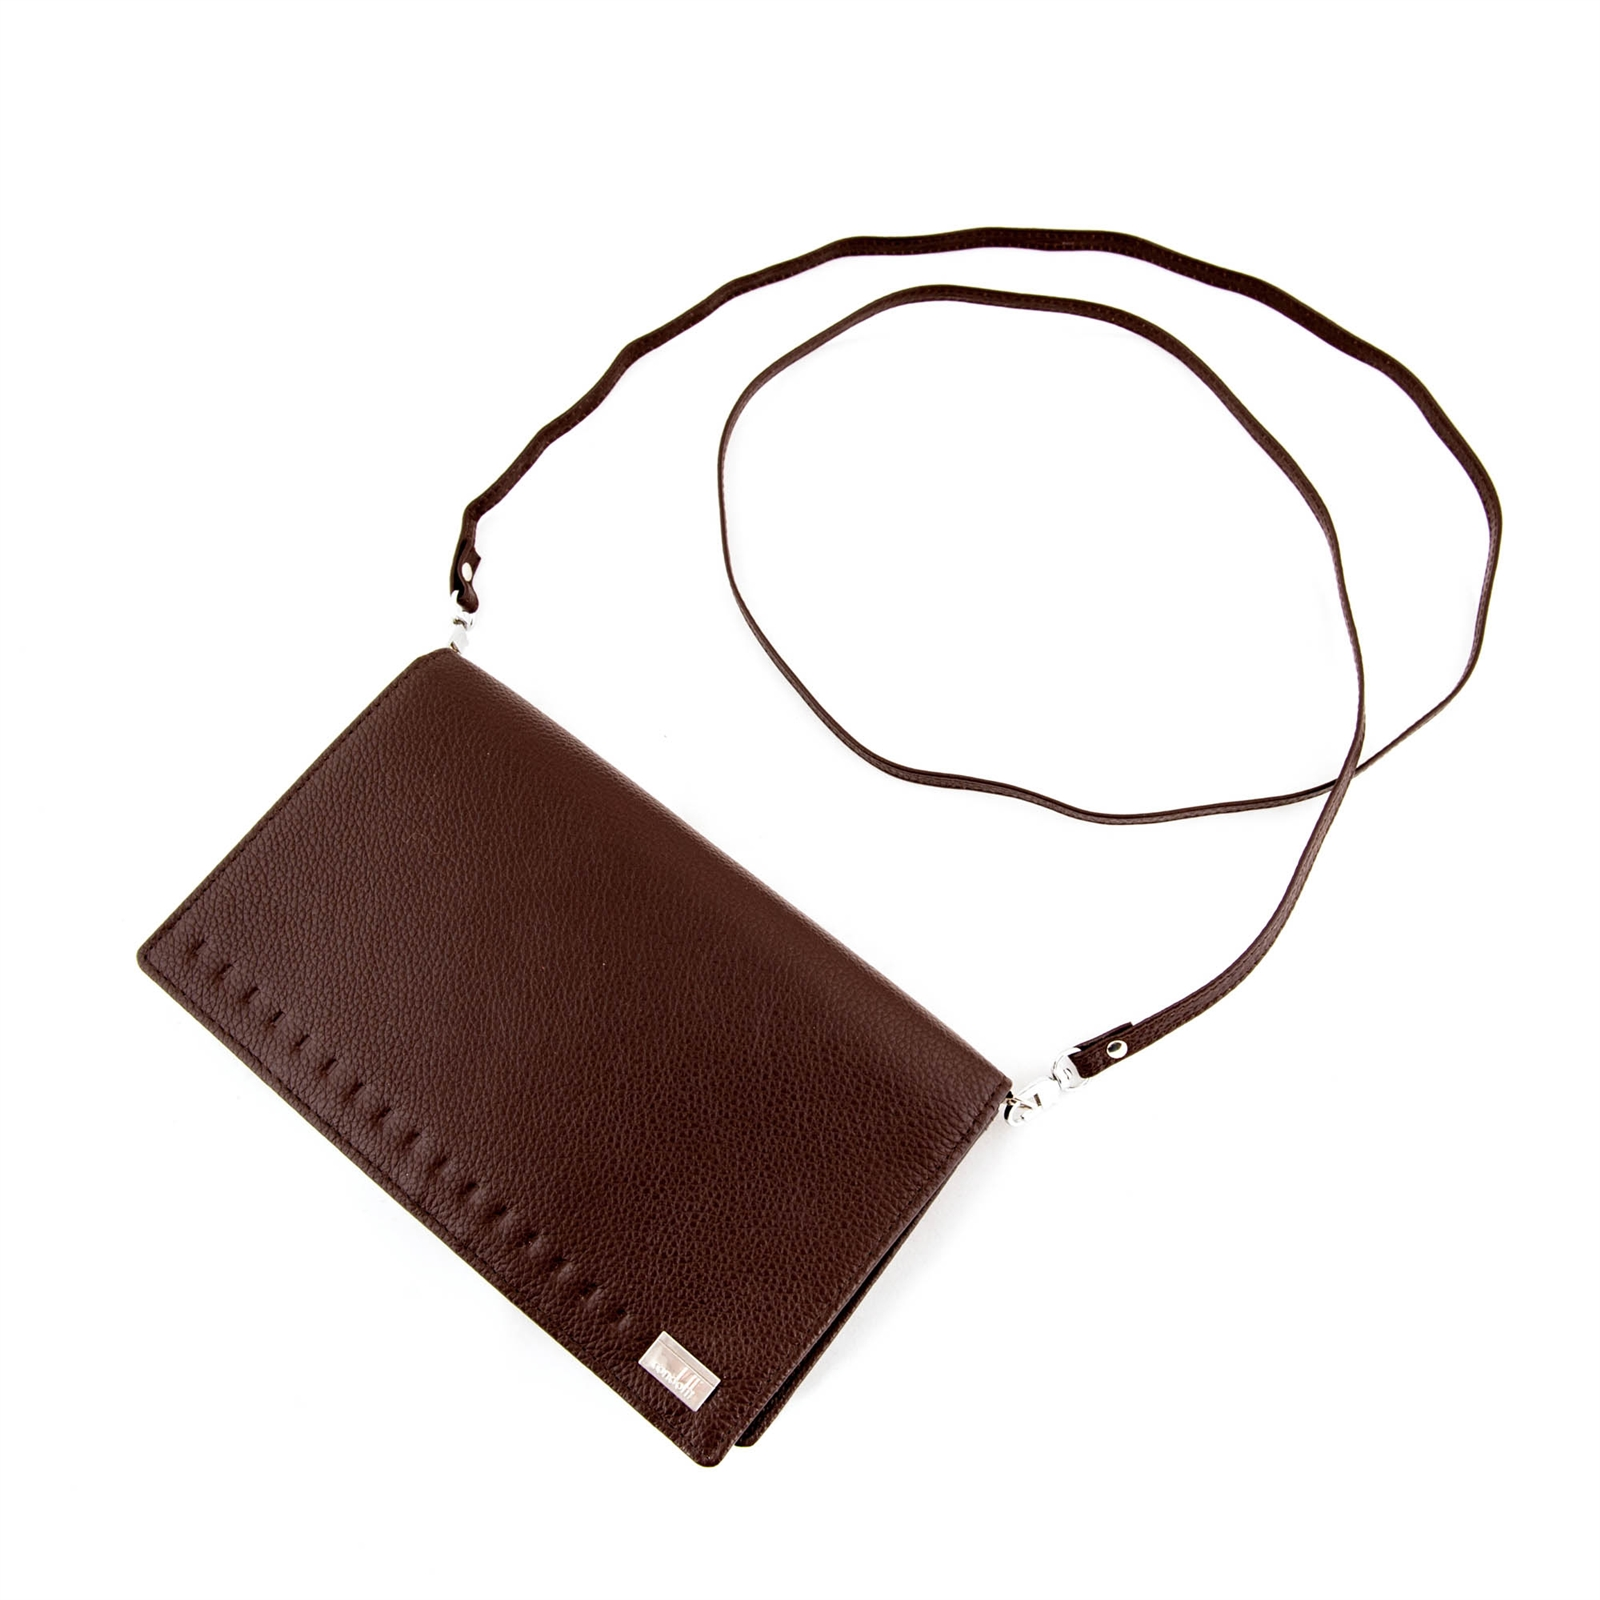 LEATHER LONG WALLET 142-1316